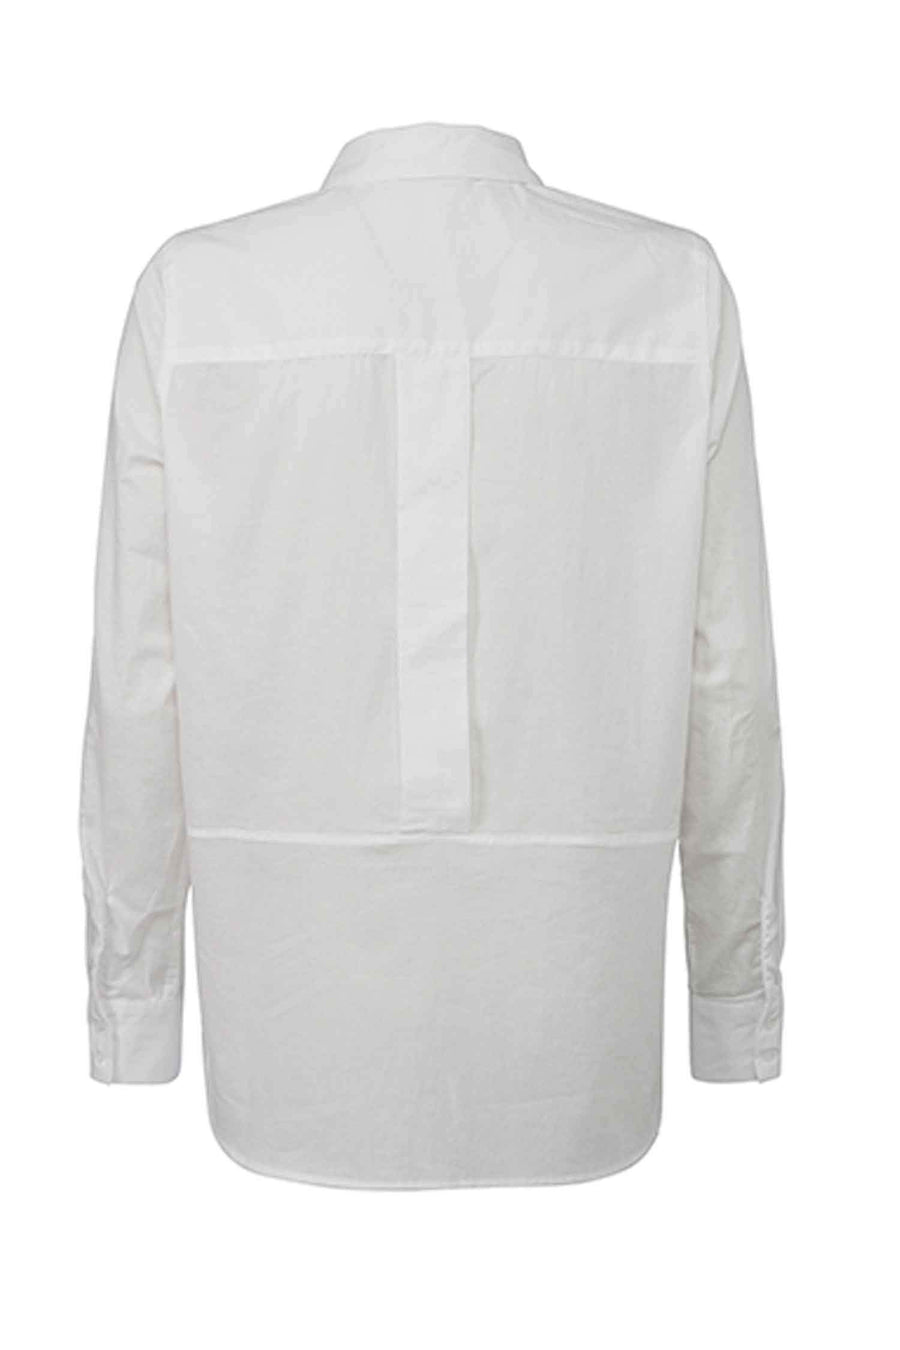 Blouse Transparent in Pure White by Yaya Frockaholics.com